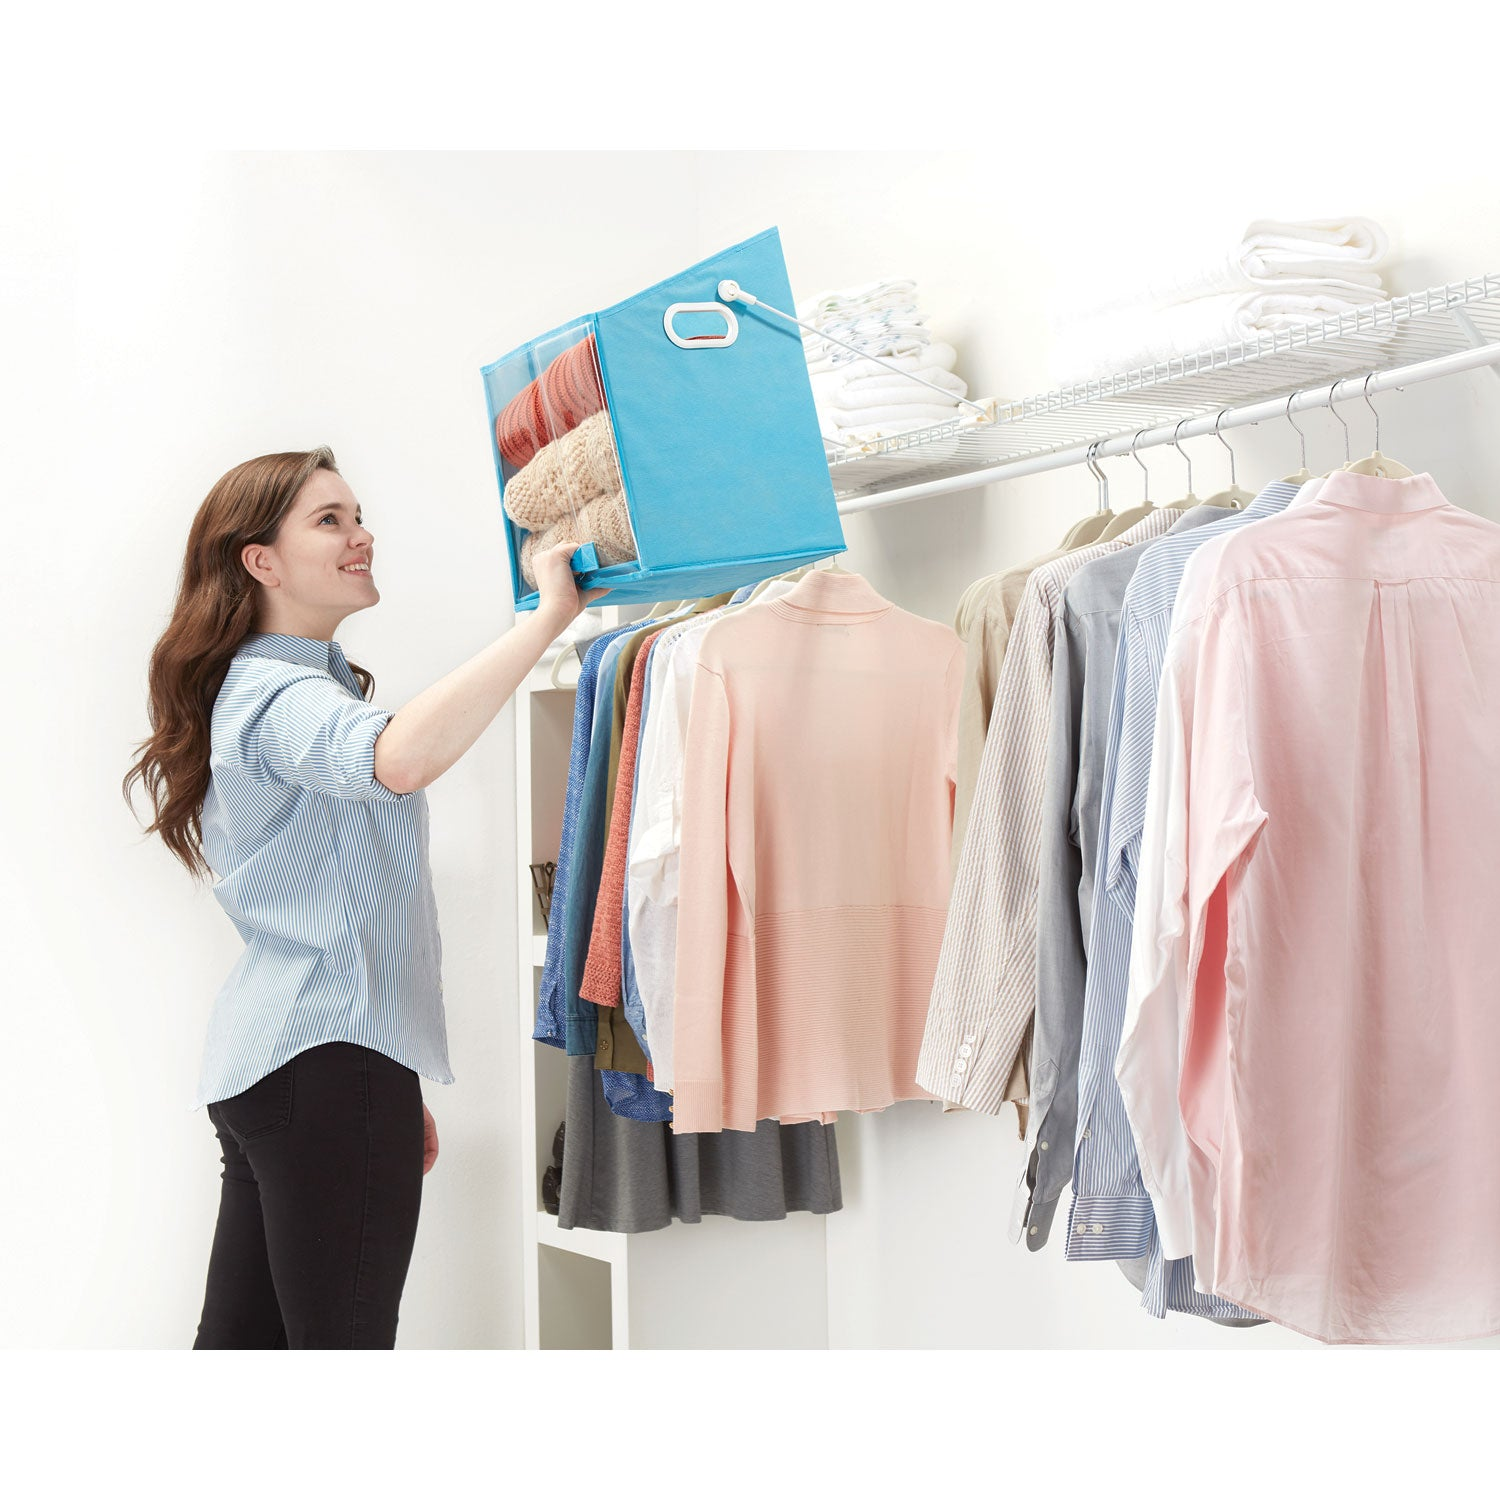 Closet Caddy-Retrieve Items From High Shelves Safely And Easily-Blue